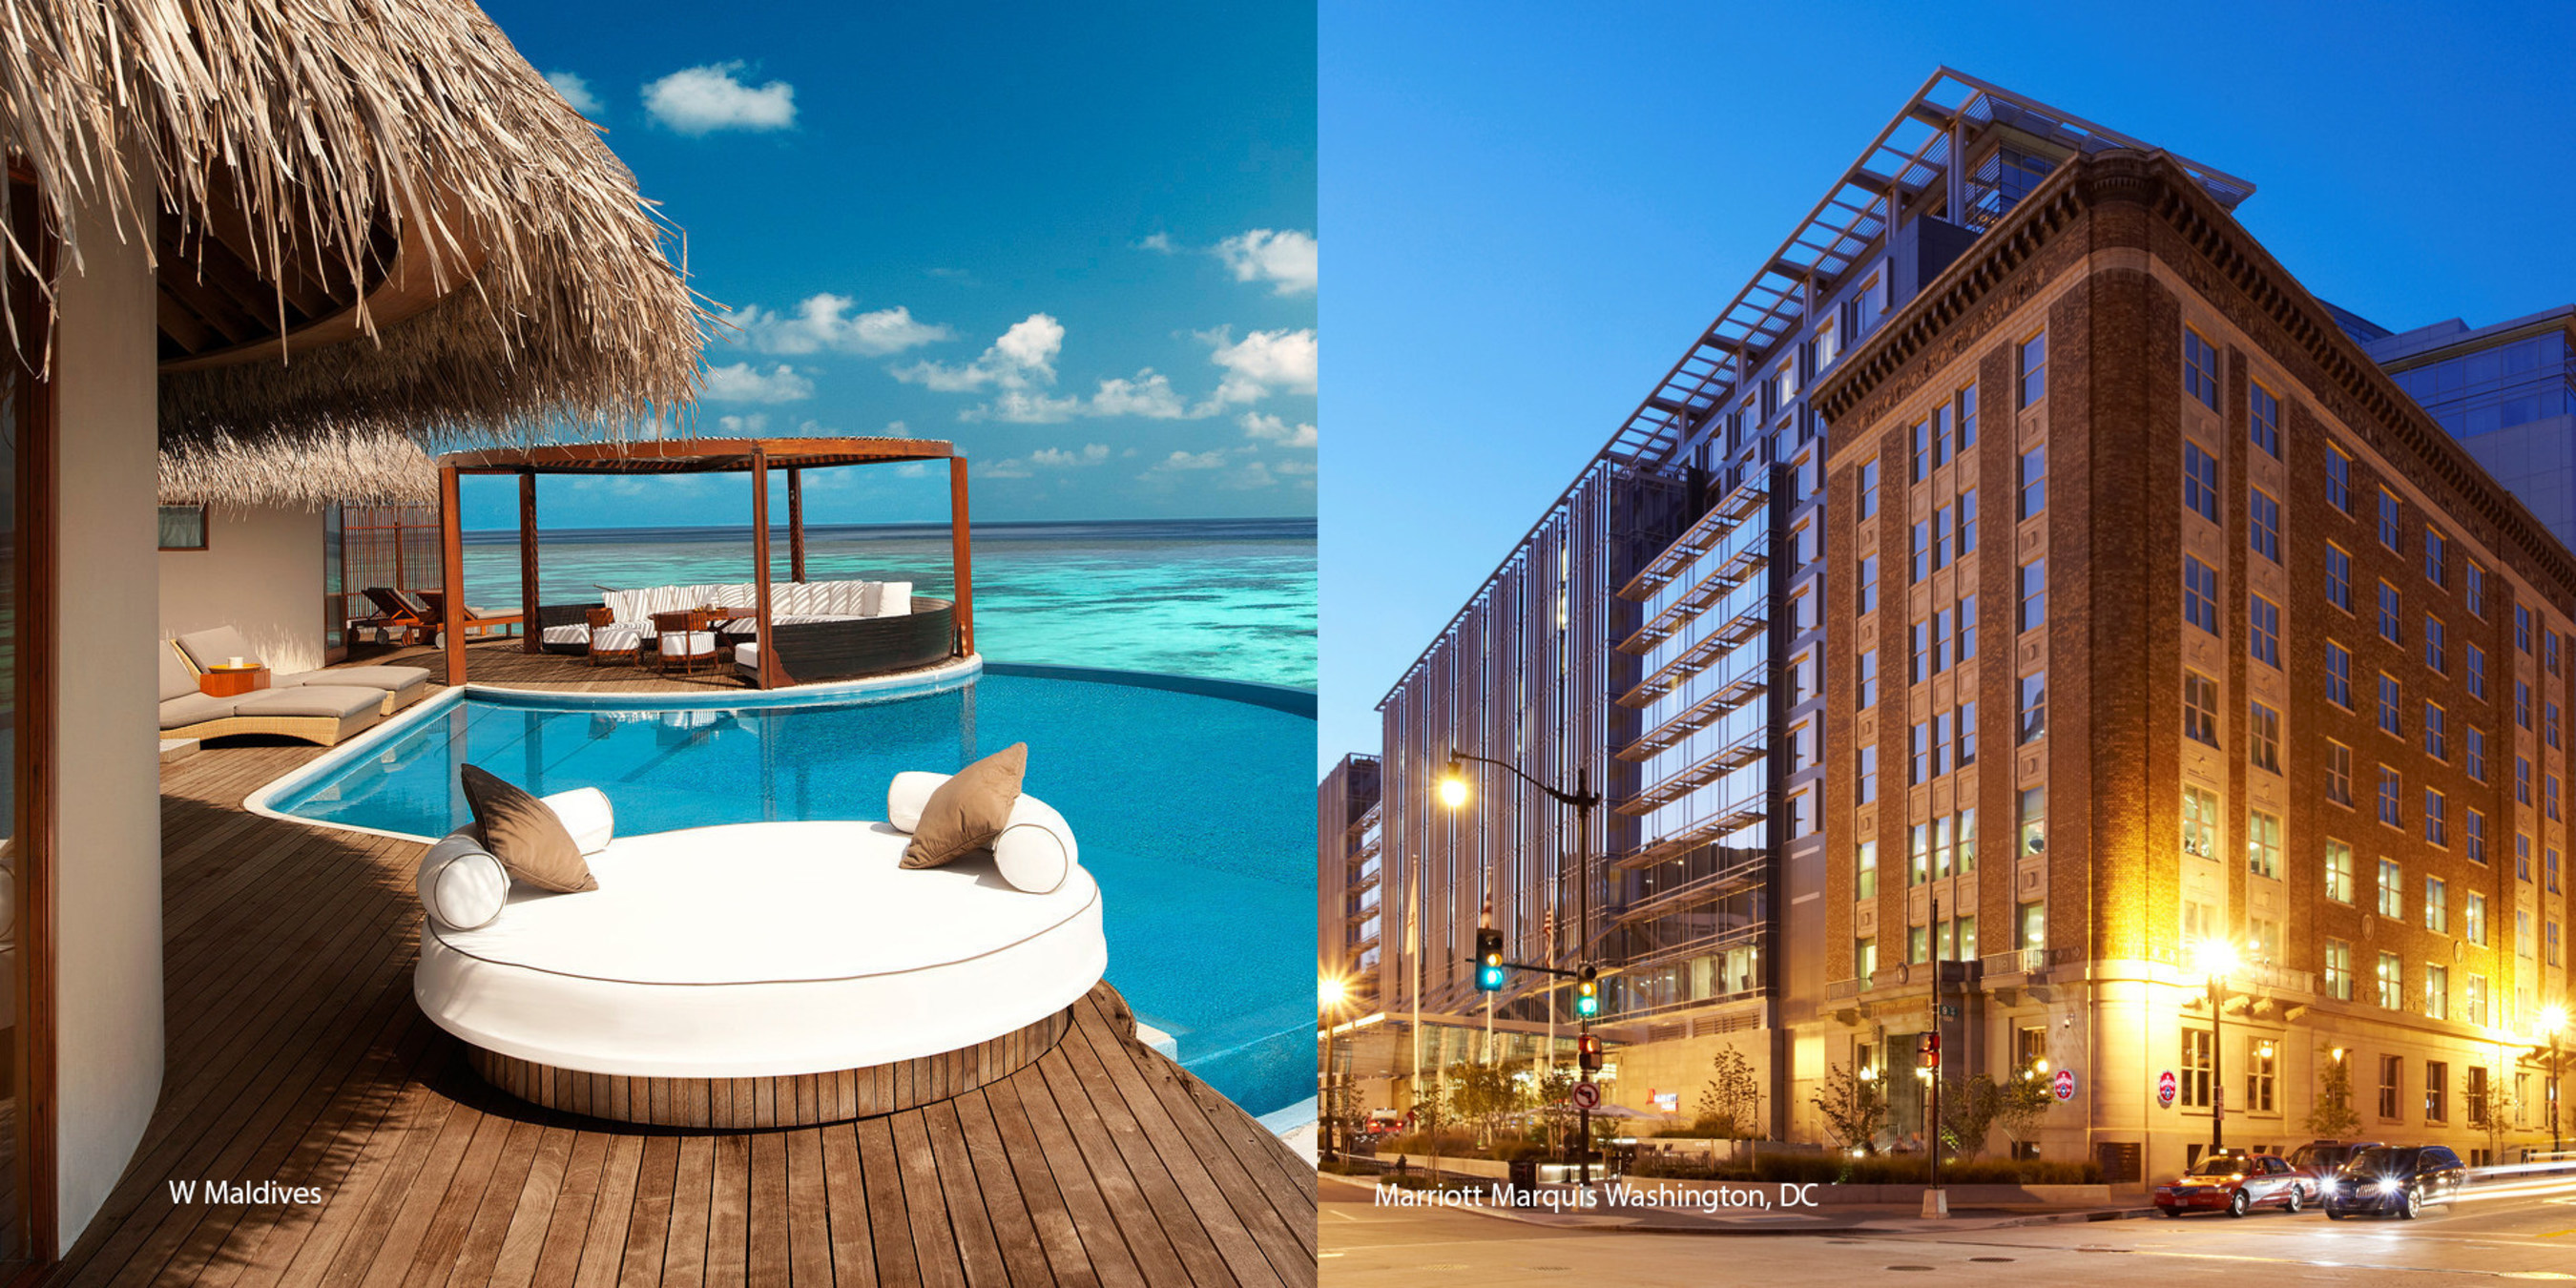 Marriott International Completes Acquisition of Starwood Hotels & Resorts Worldwide, Creating World's Largest and Best Hotel Company While Providing Unparalleled Guest Experience